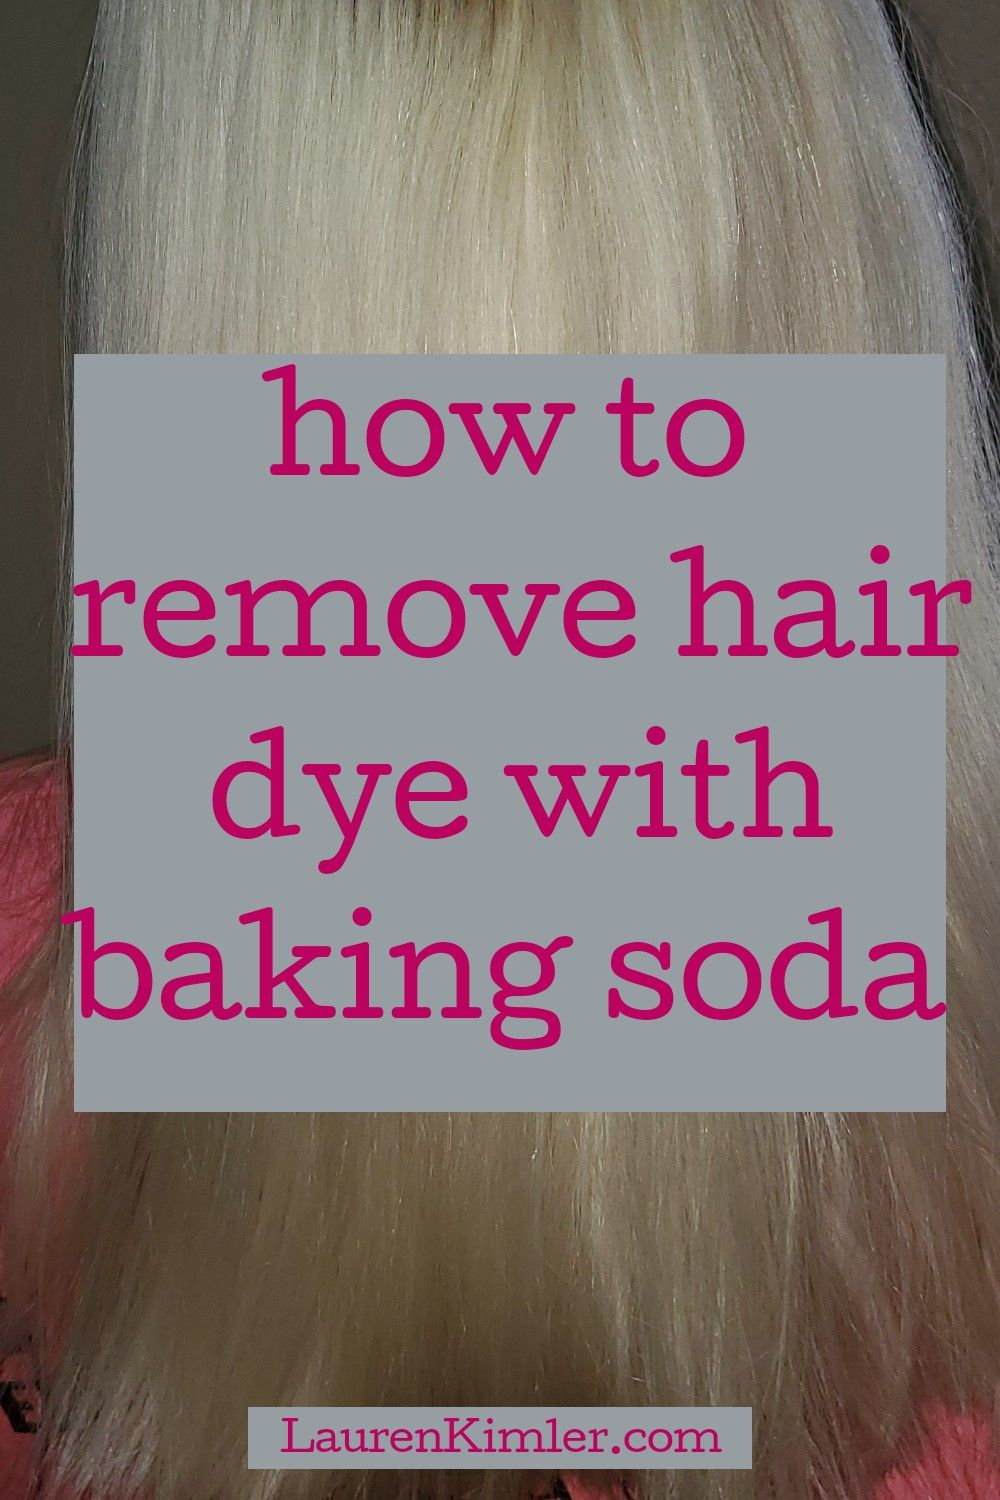 How To Remove Hair Dye With Baking Soda Hair Dye Removal Hair Color Remover Diy Hair Color Remover